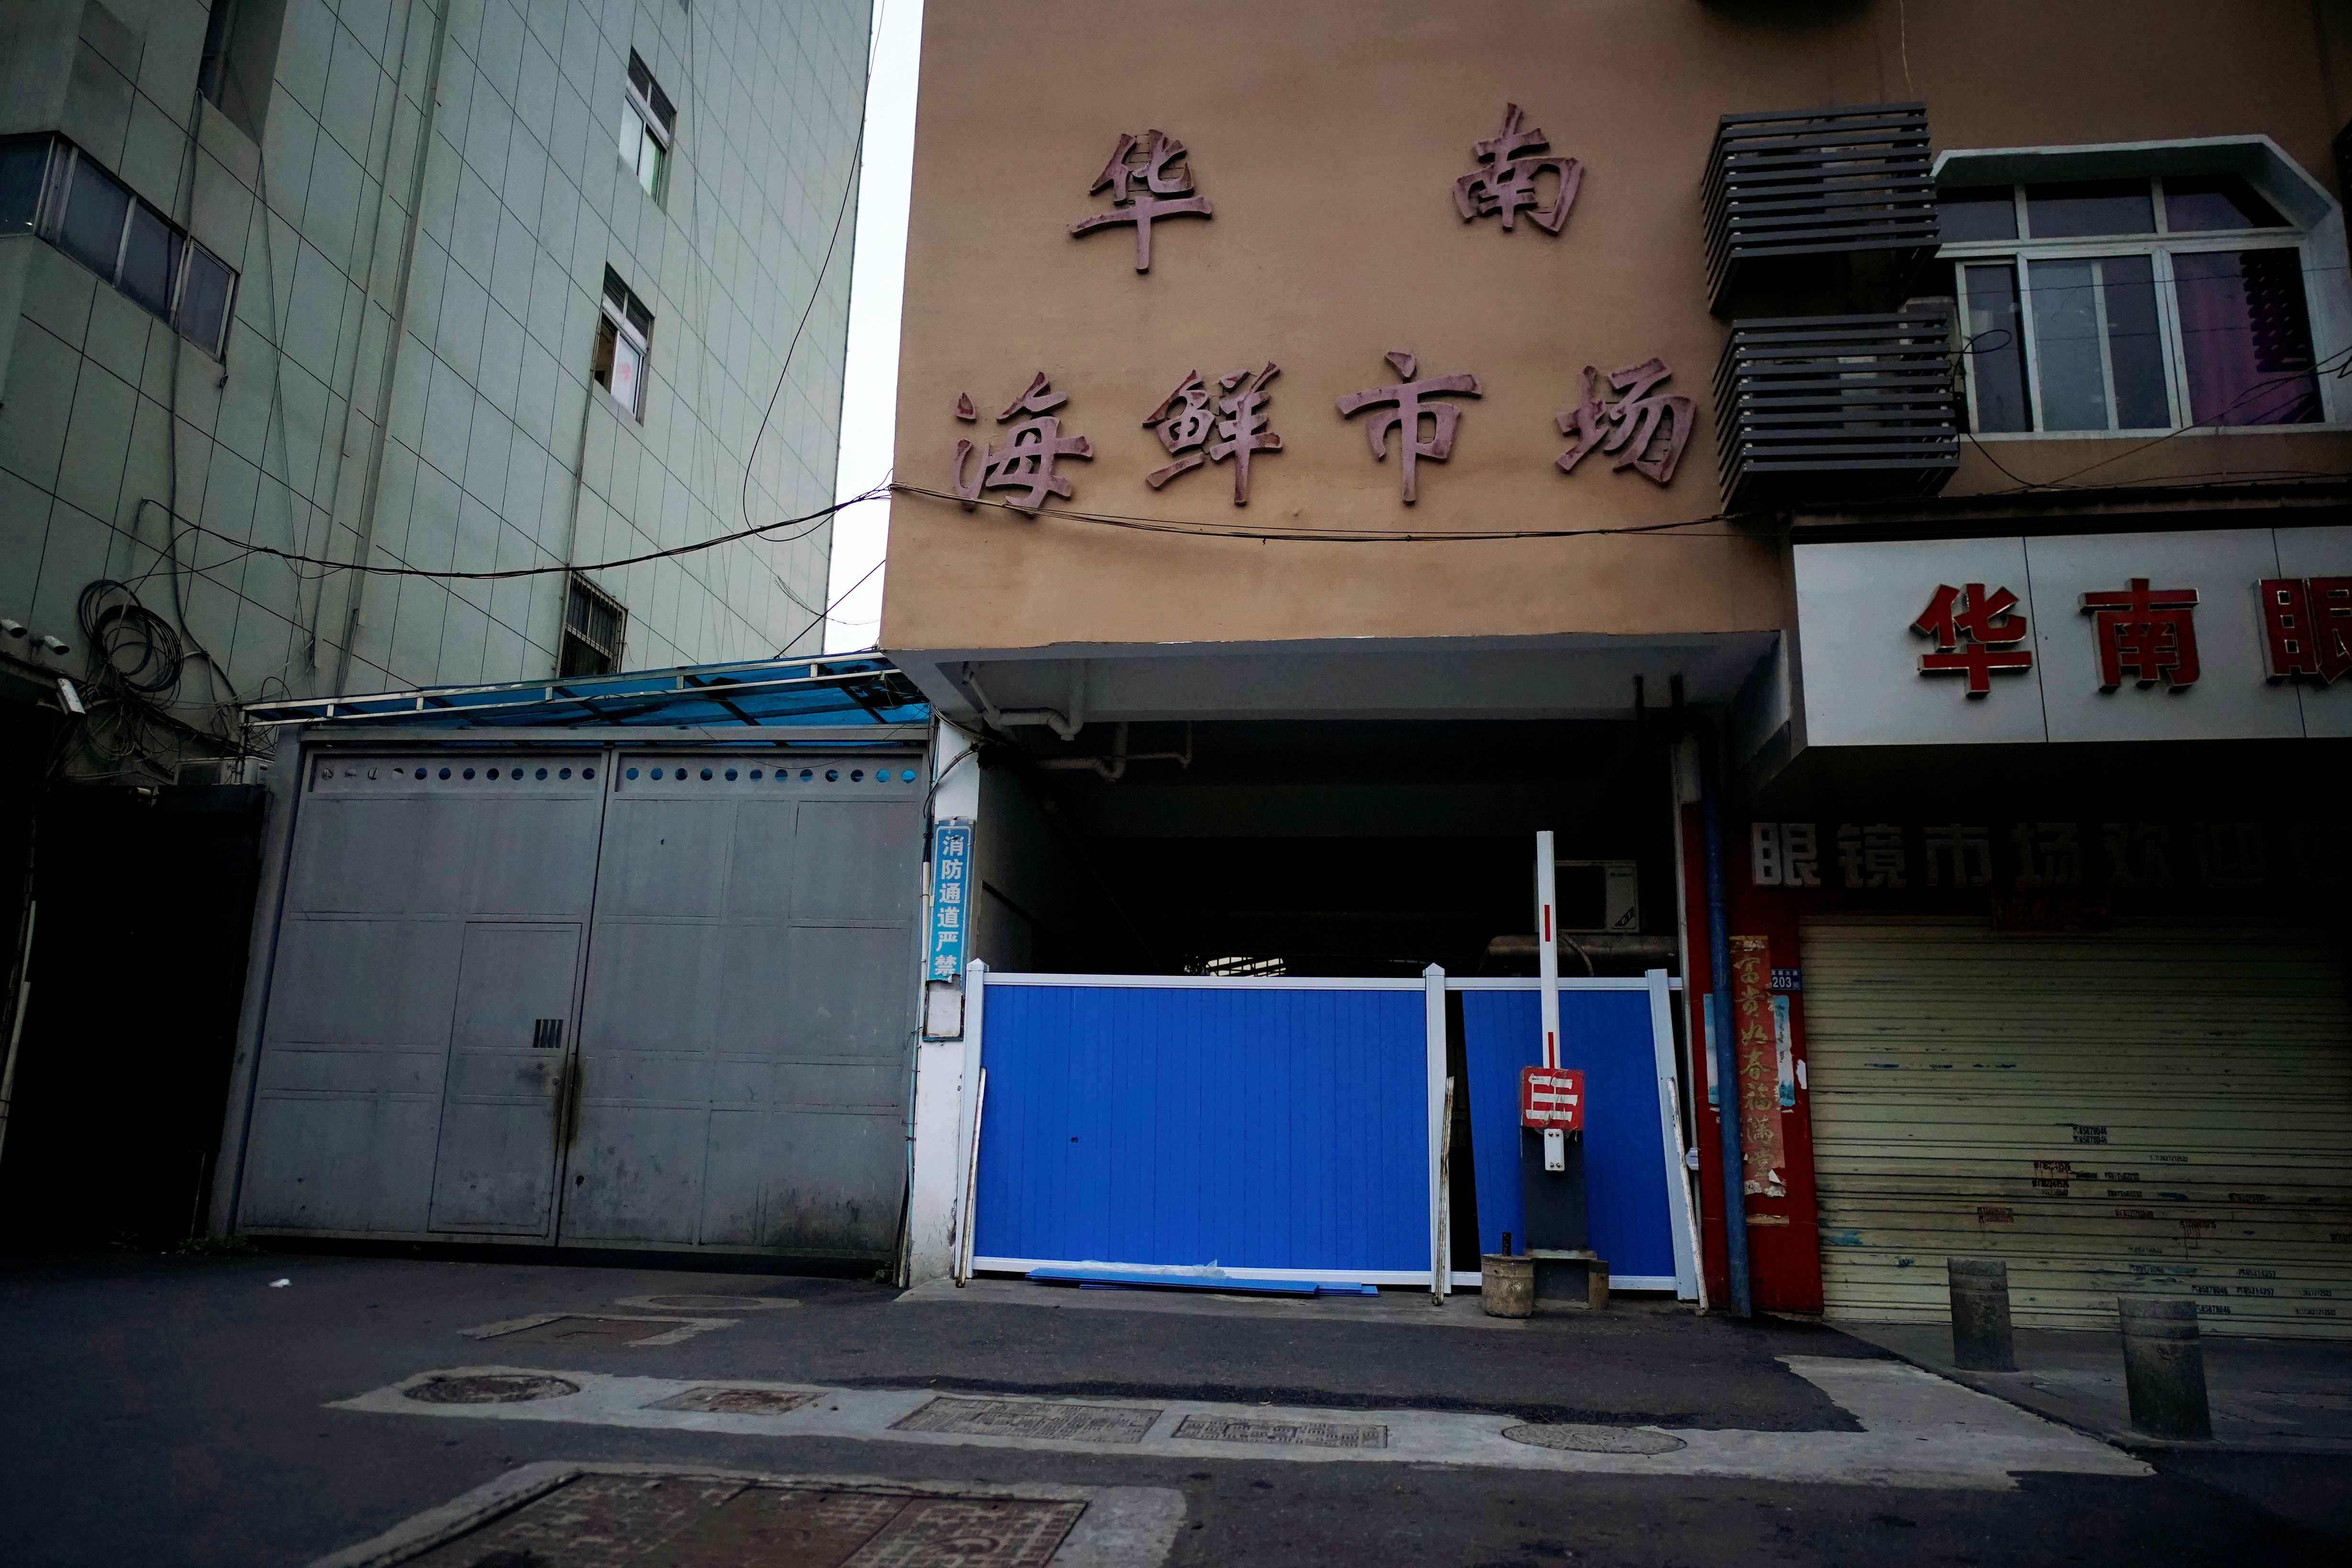 A blocked entrance to Huanan seafood market, where the coronavirus that can cause COVID-19 is believed to have first surfaced, is seen in Wuhan, Hubei province, China March 30, 2020. Picture taken March 30, 2020.  REUTERS/Aly Song/File Photo/File Photo